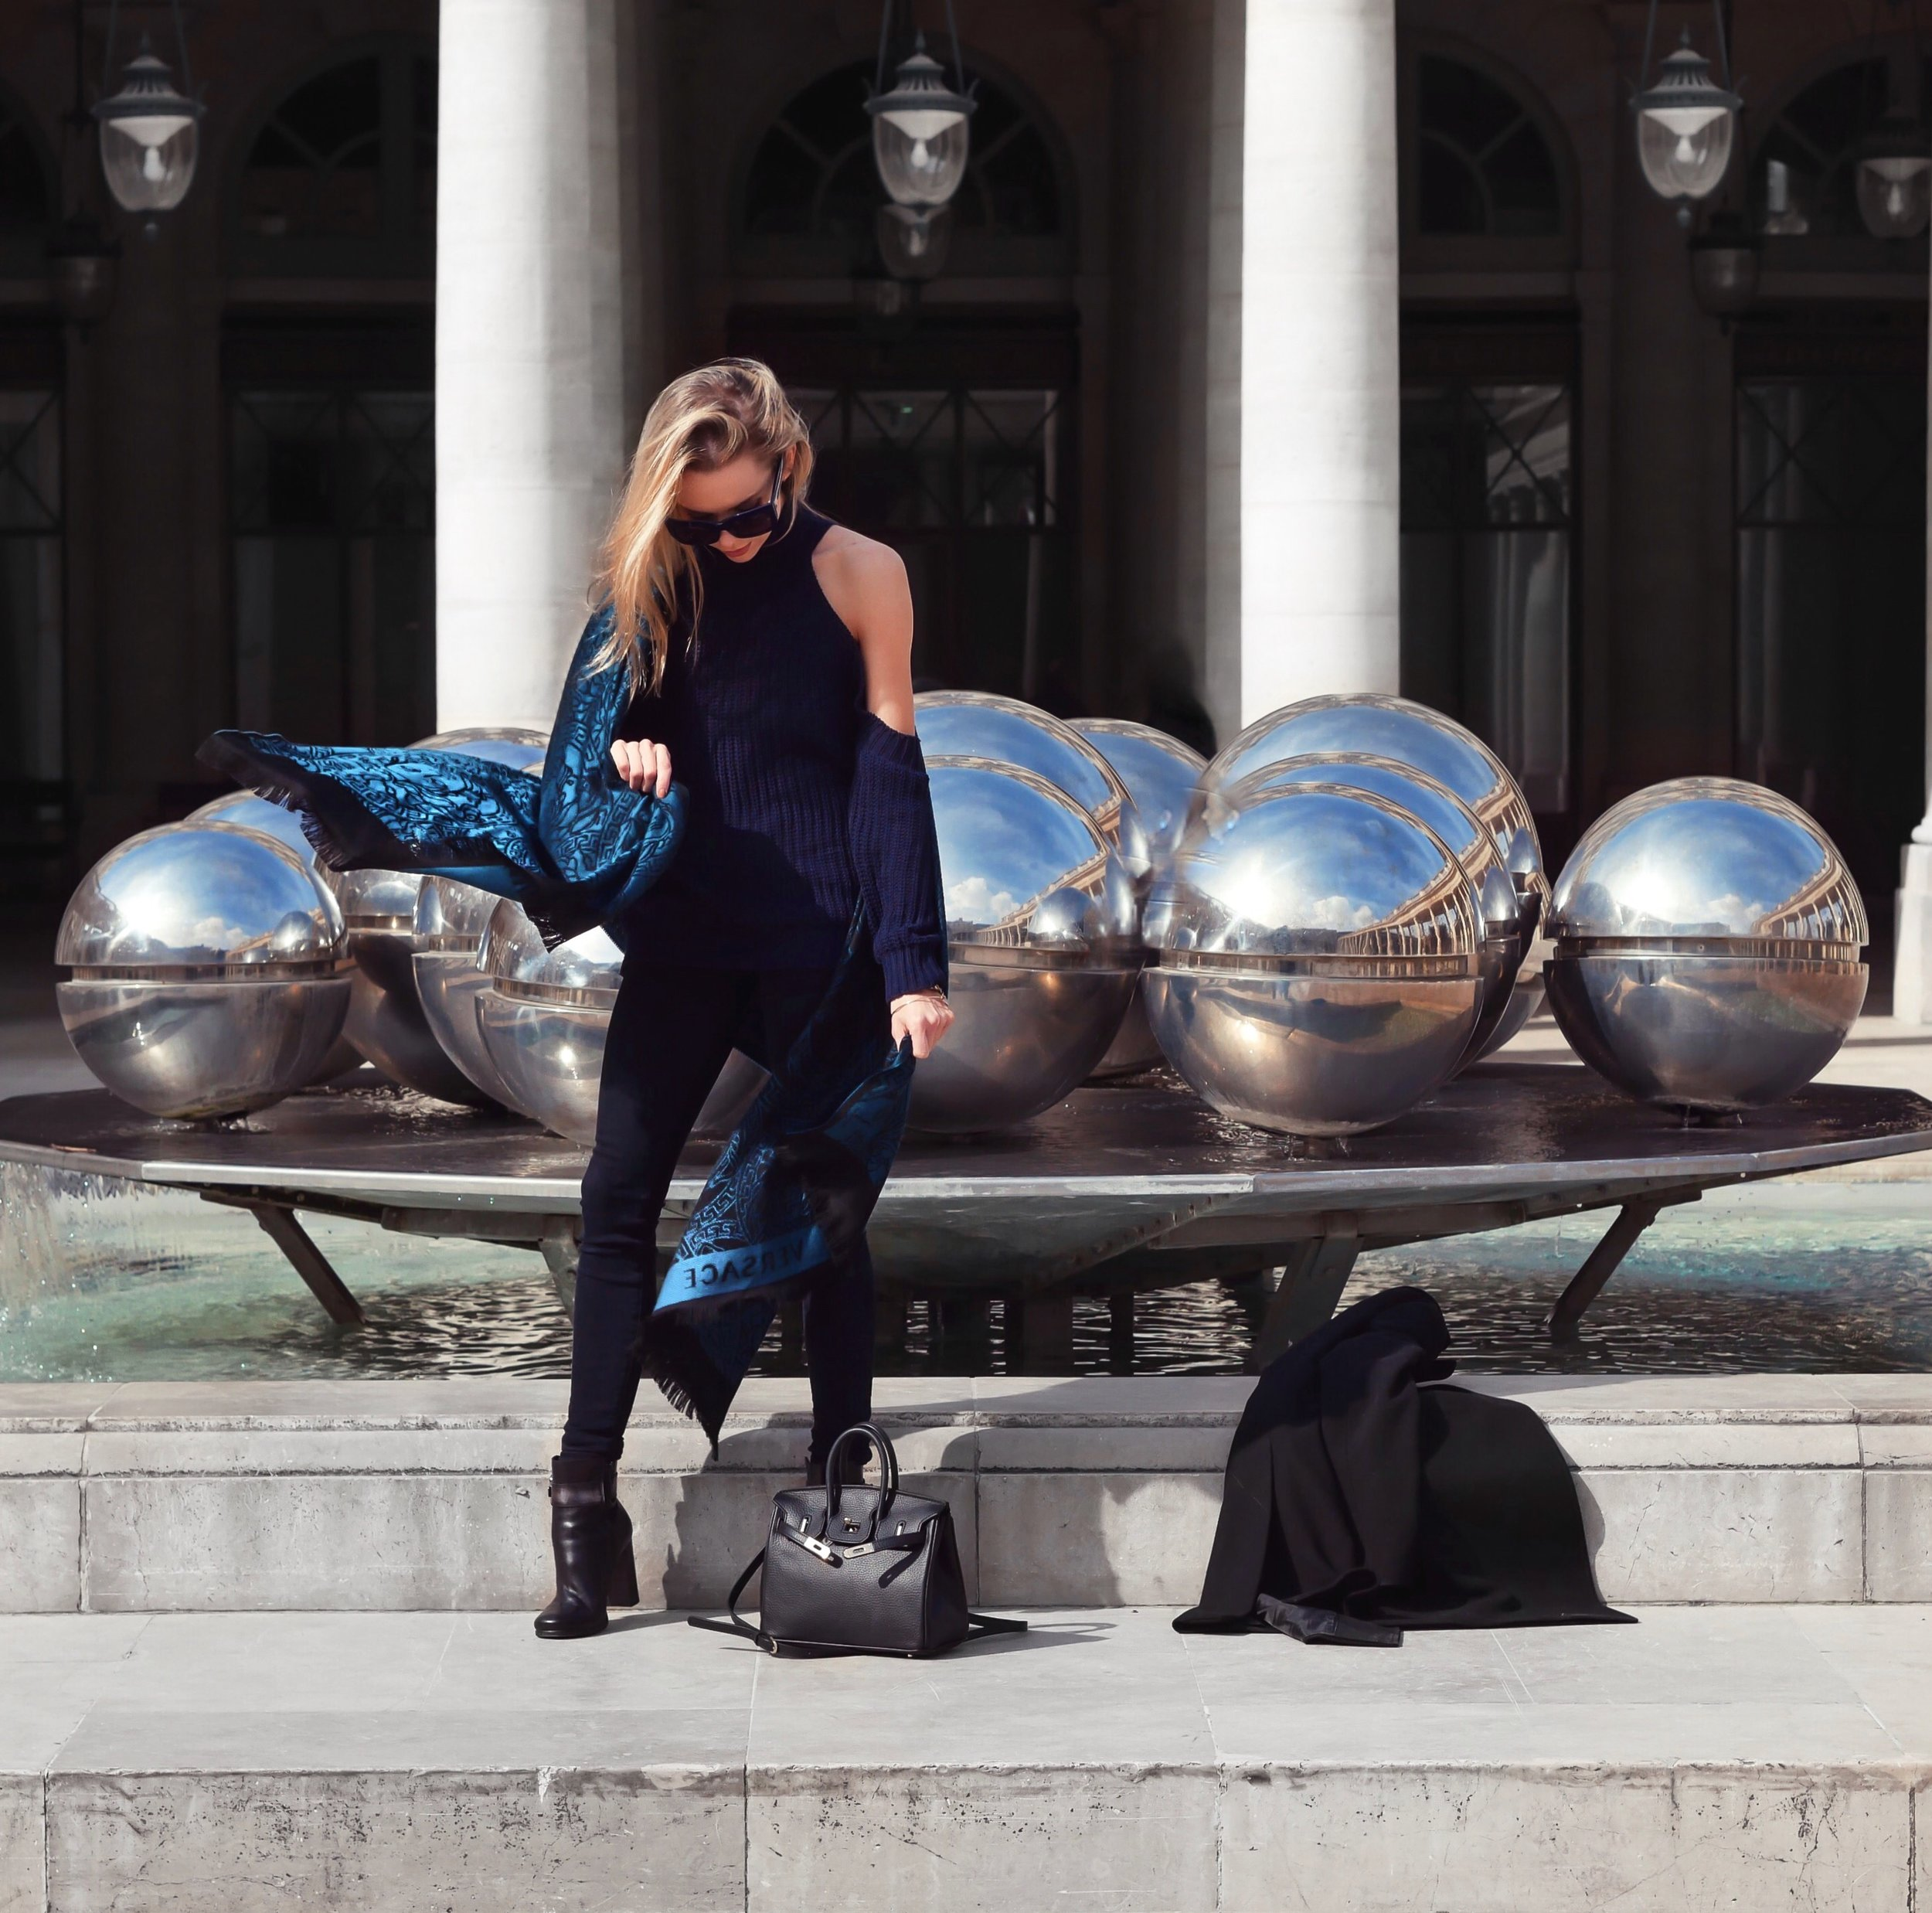 paris, travel, haul, affordable fashion, streetstyle, inspiration, what to wear, fashion, lookbook, style, fashion blogger, laura blair, youtuber, london fashion girl